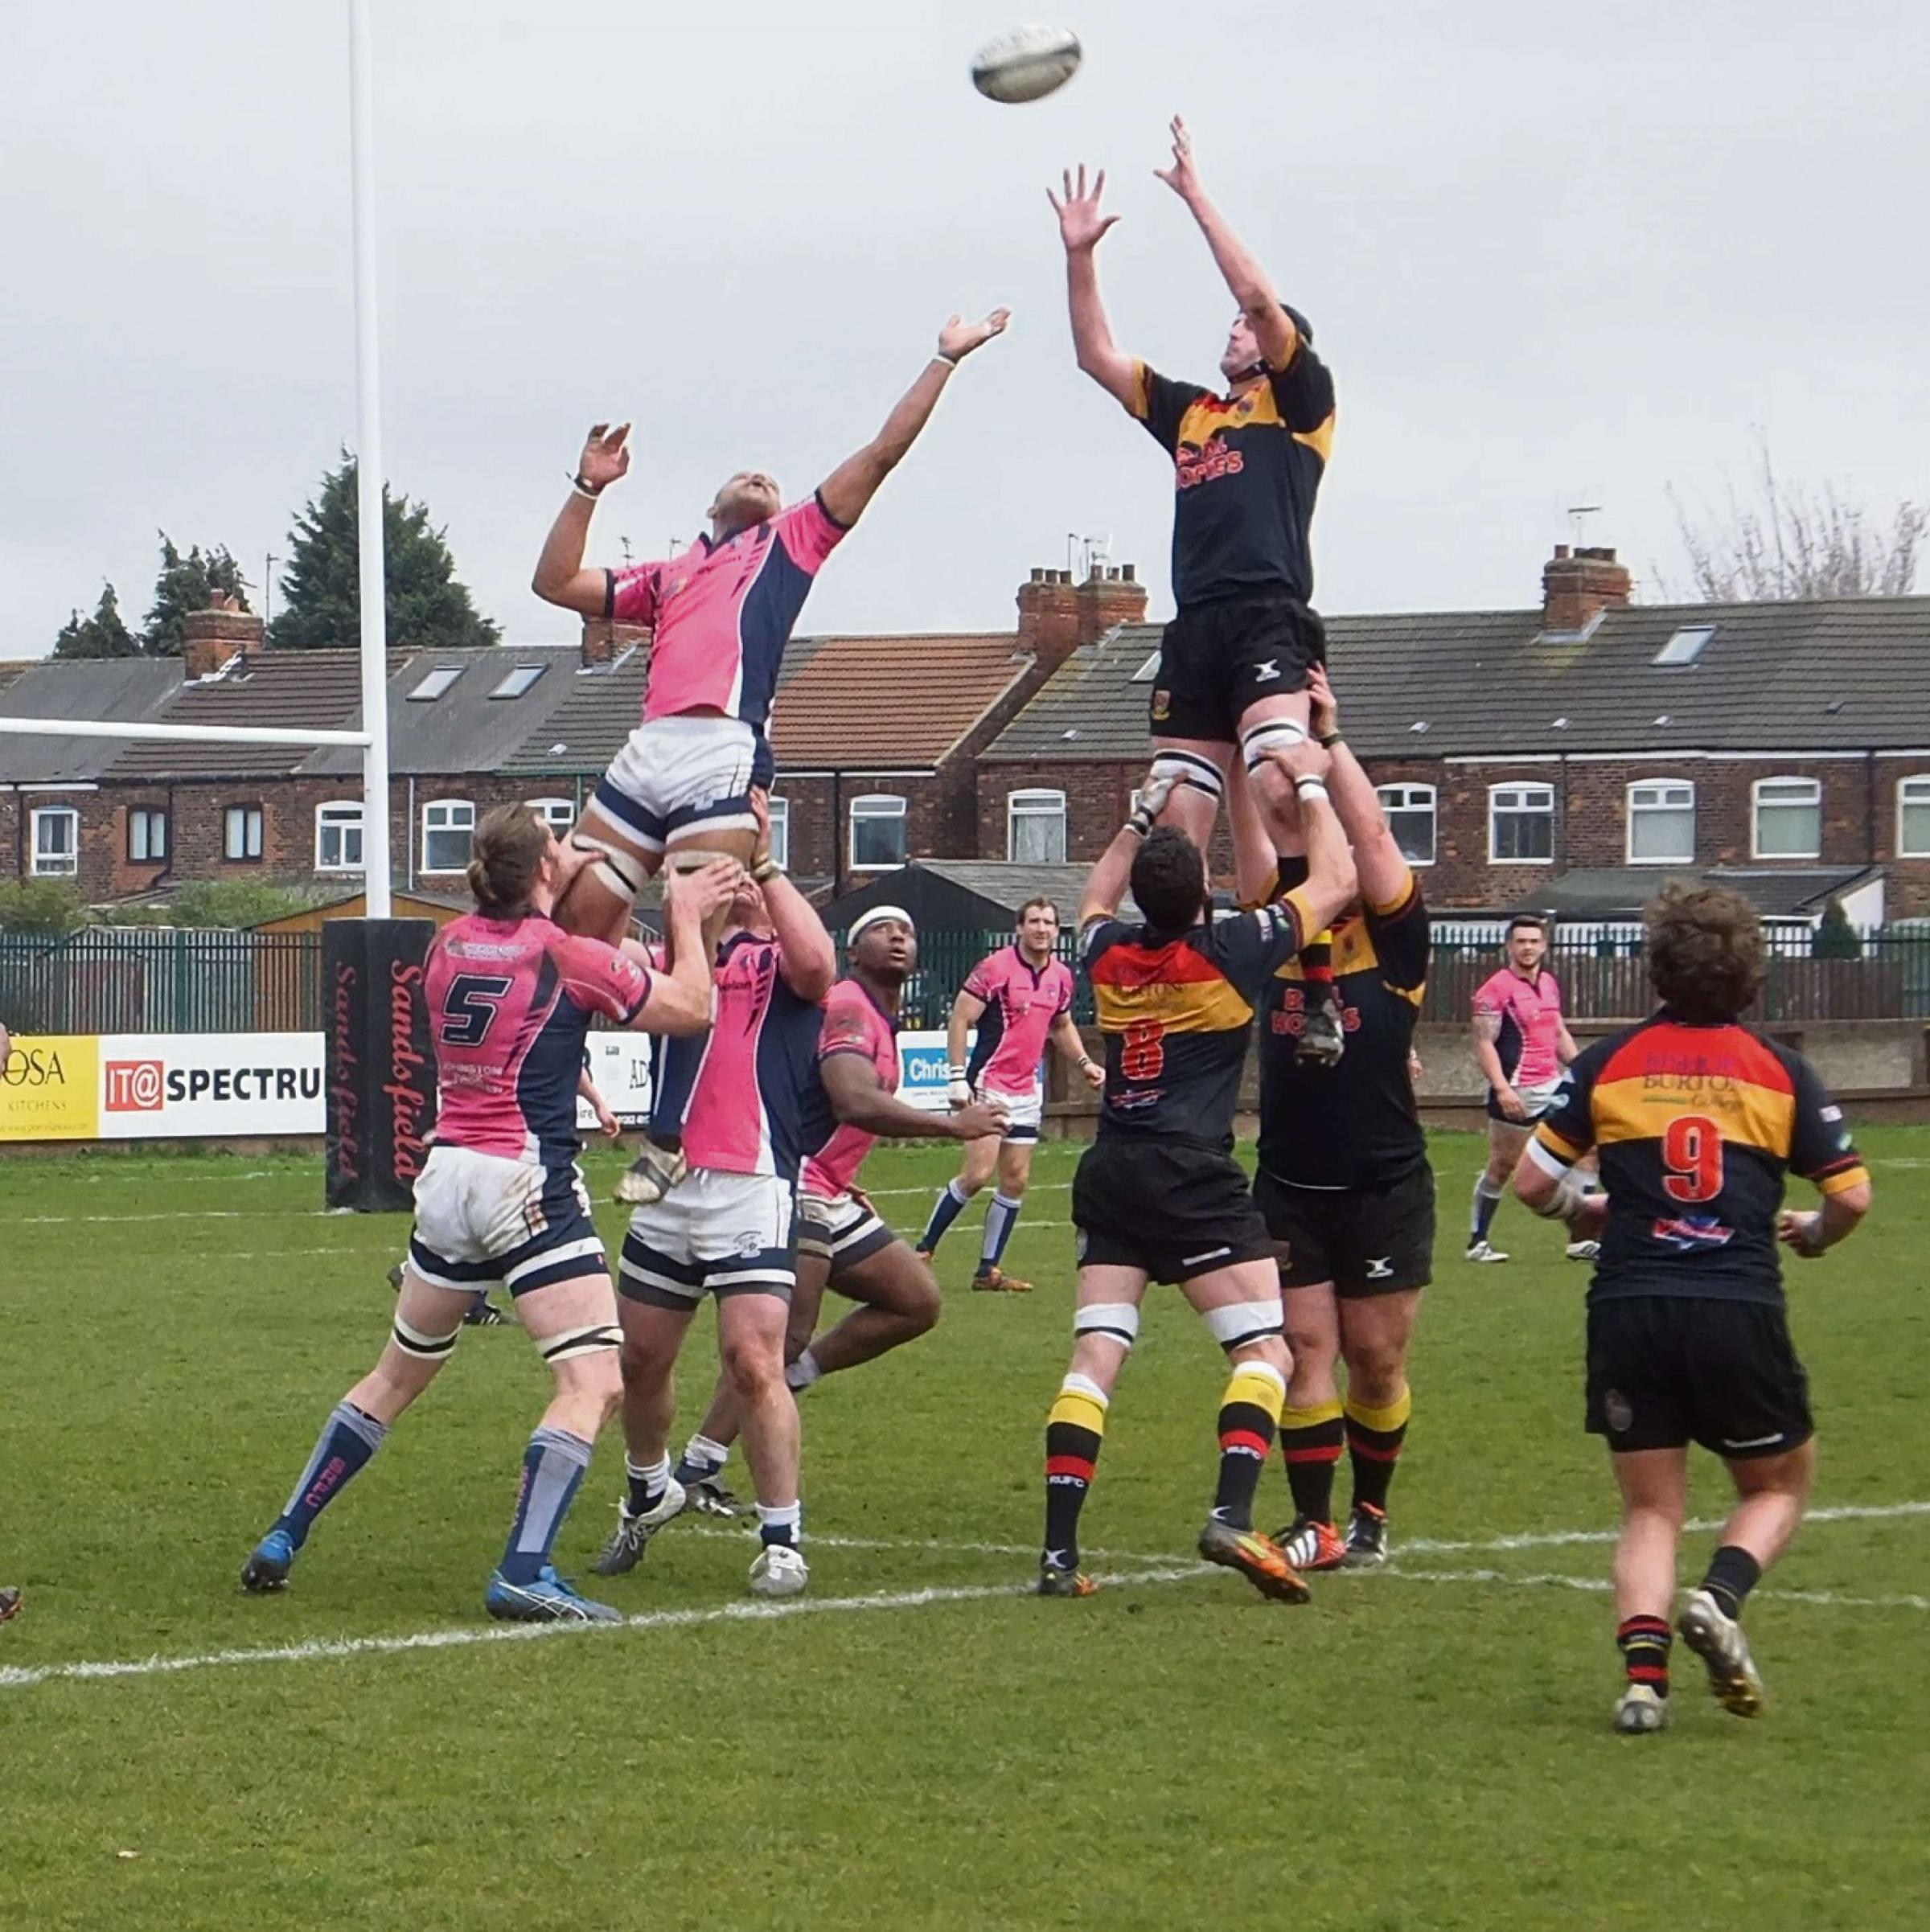 Hull secure lineout ball on the Stourbridge 22. Photo: